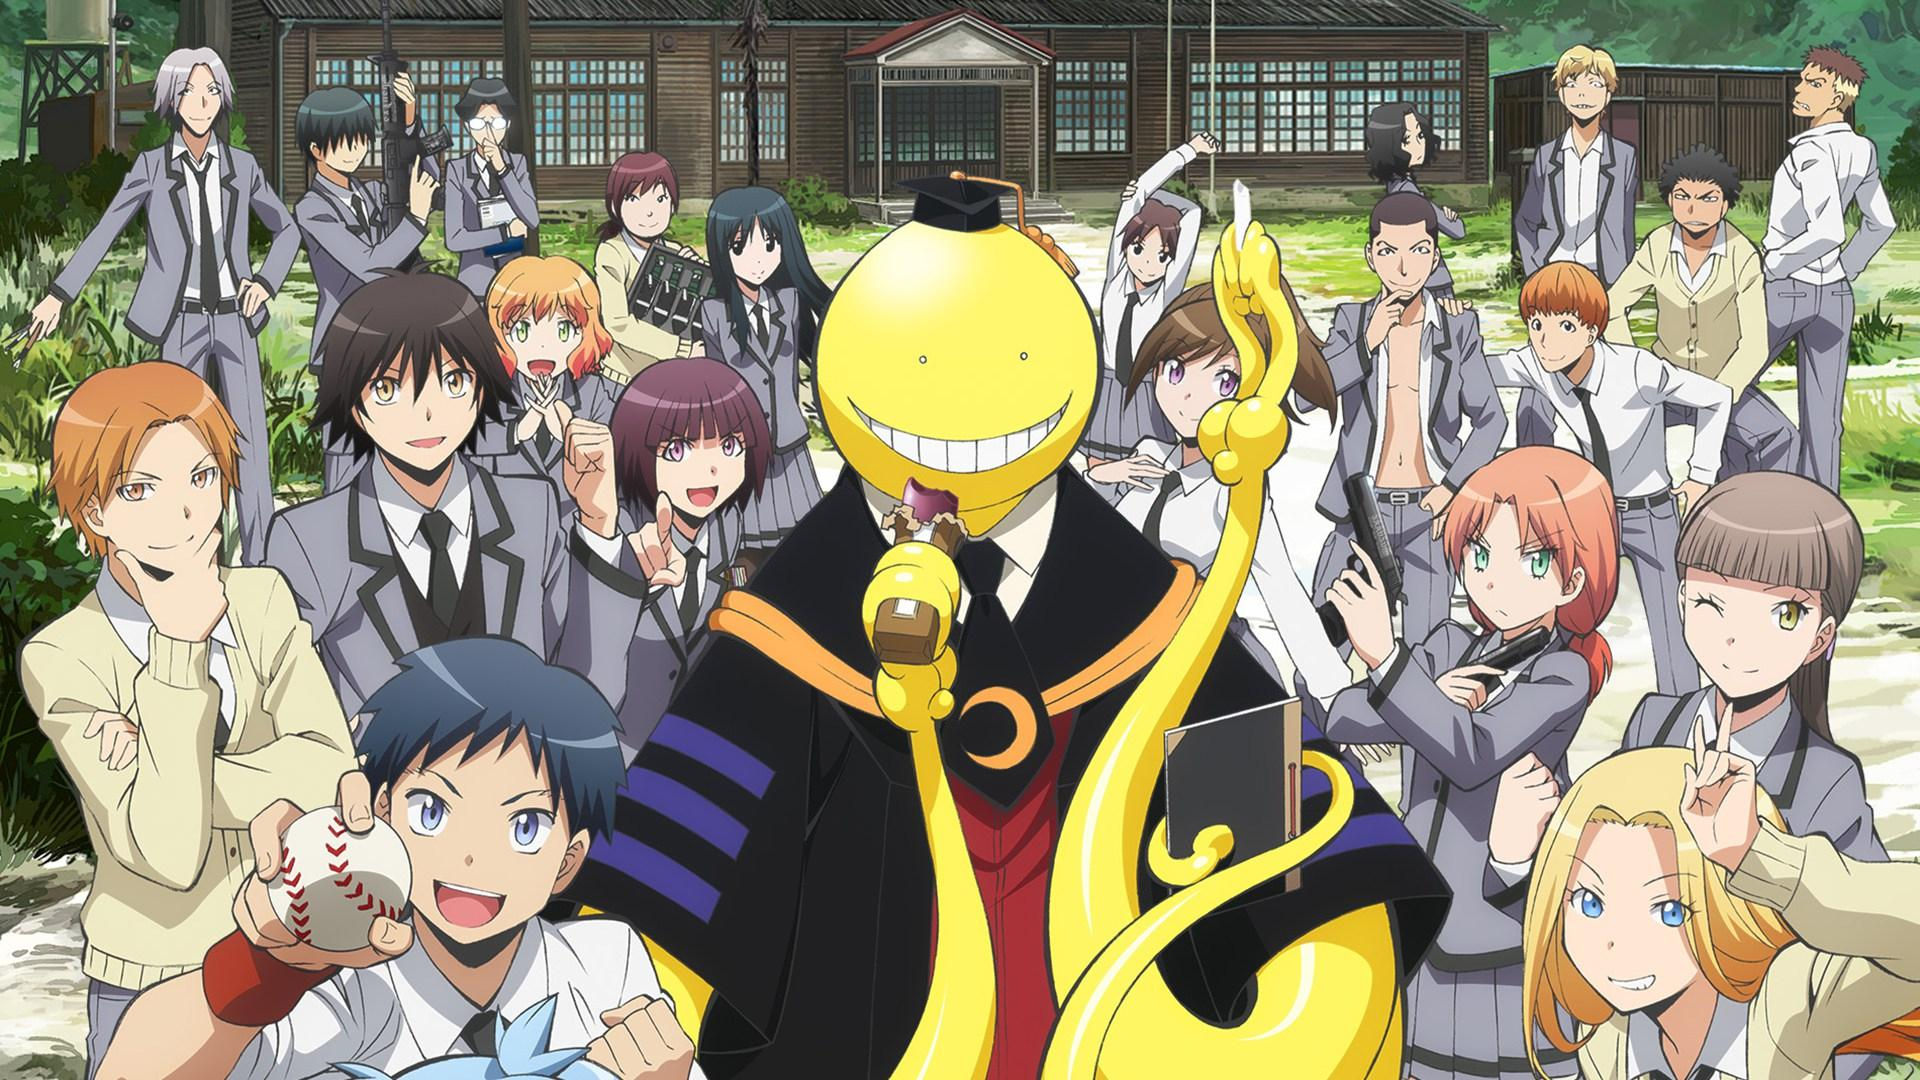 Assassination Classroom Wallpapers - Top Free ...